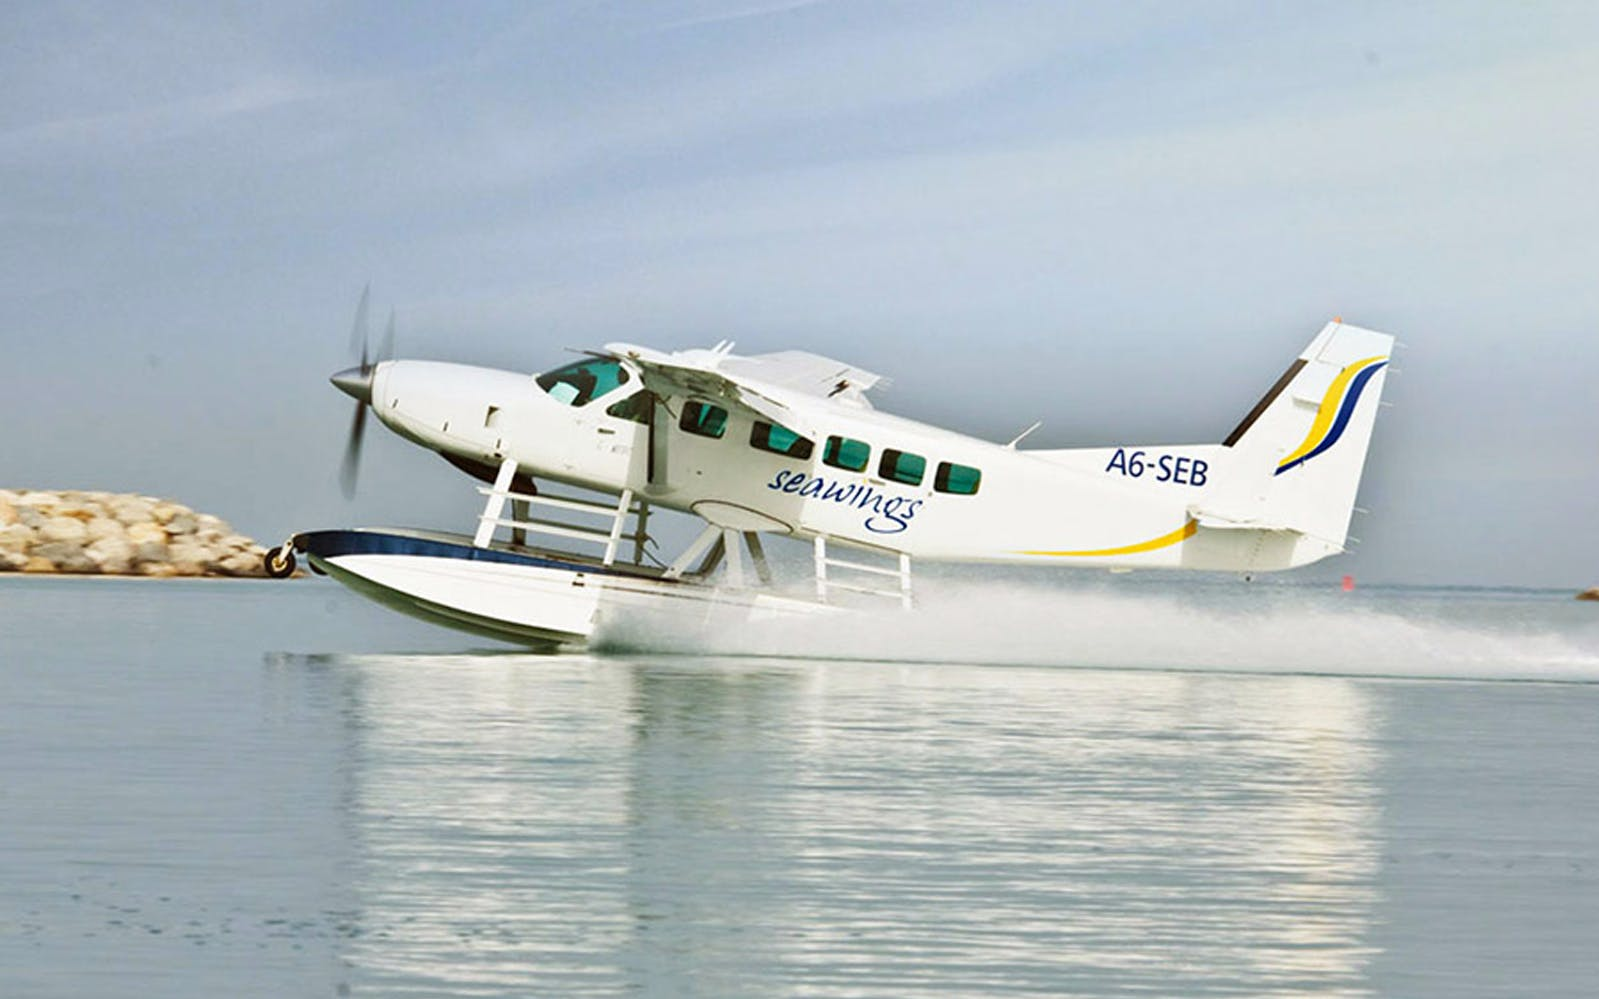 seawings seaplane tour from dubai to abu dhabi with ferrari world-1